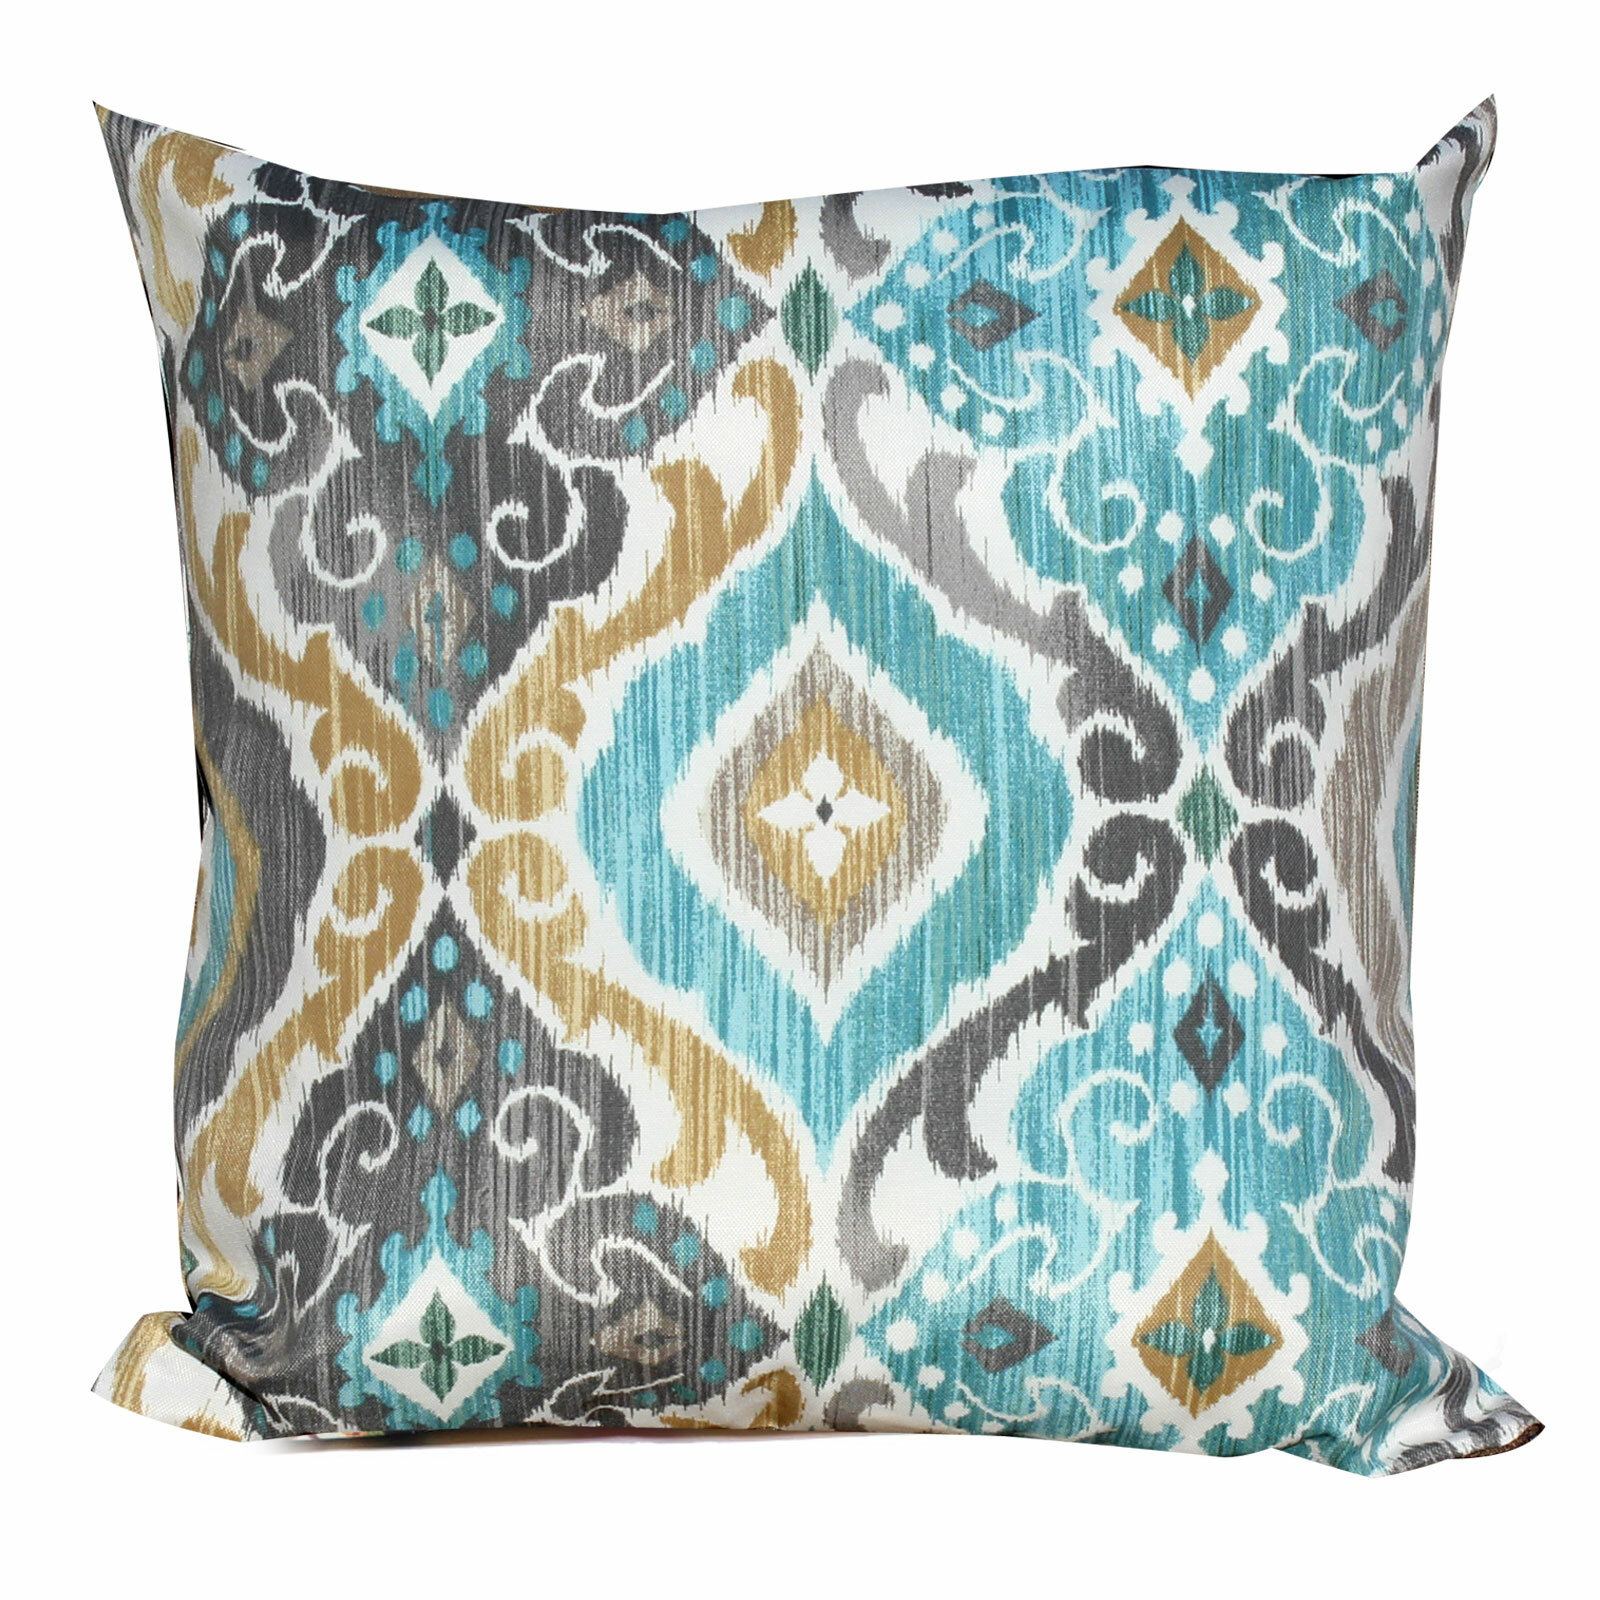 TK Classics Persian Mist Throw Pillow & Reviews | Wayfair